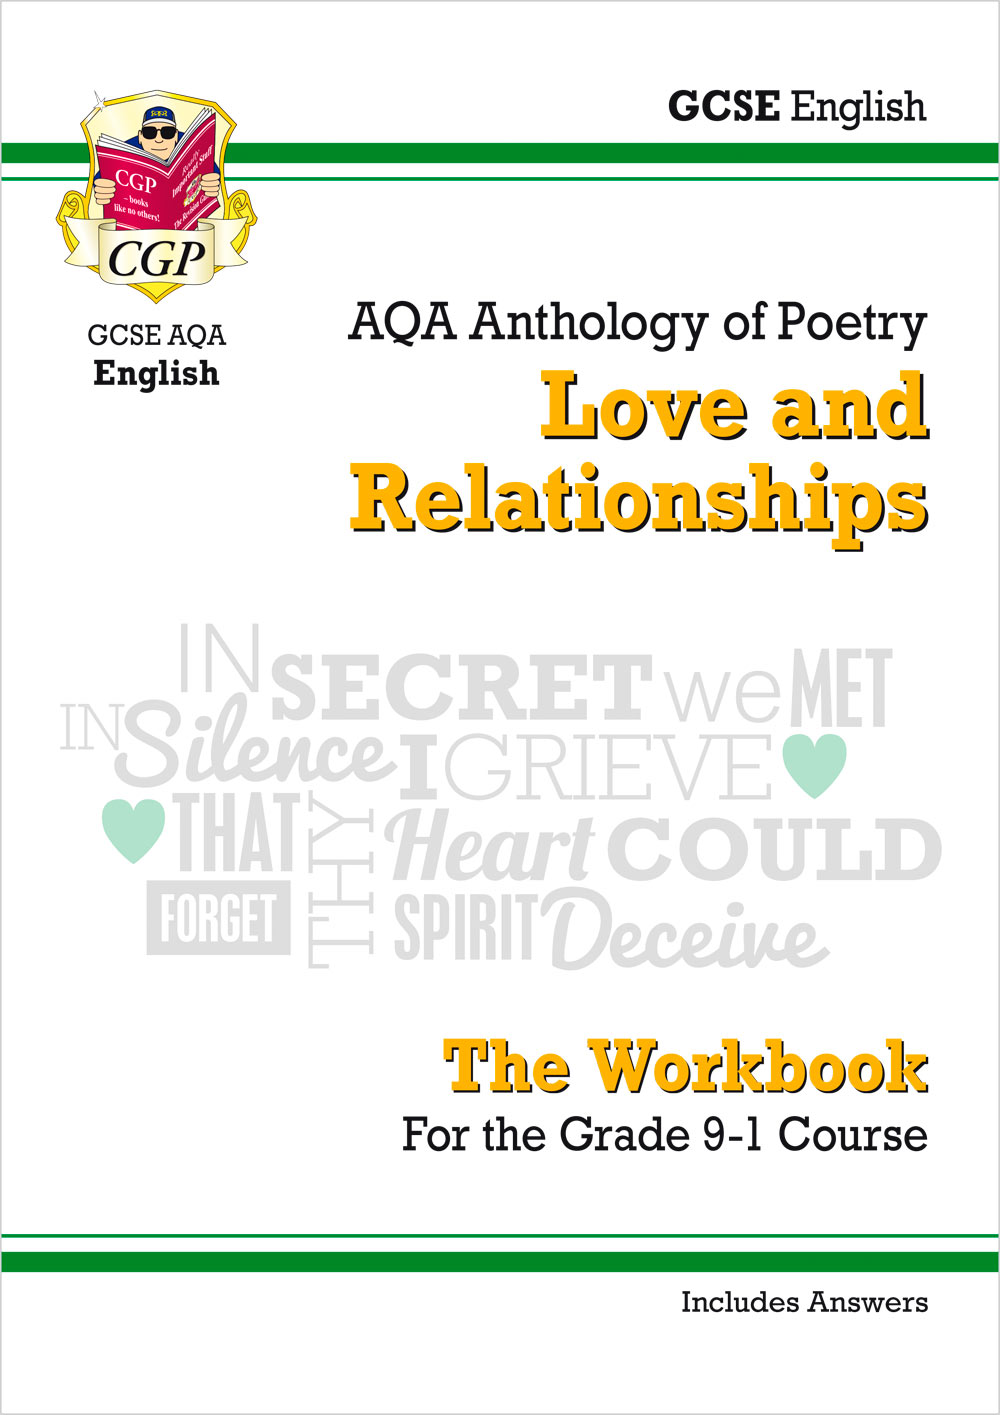 ARHW43 - GCSE English Literature AQA Poetry Workbook: Love & Relationships Anthology (includes Answe